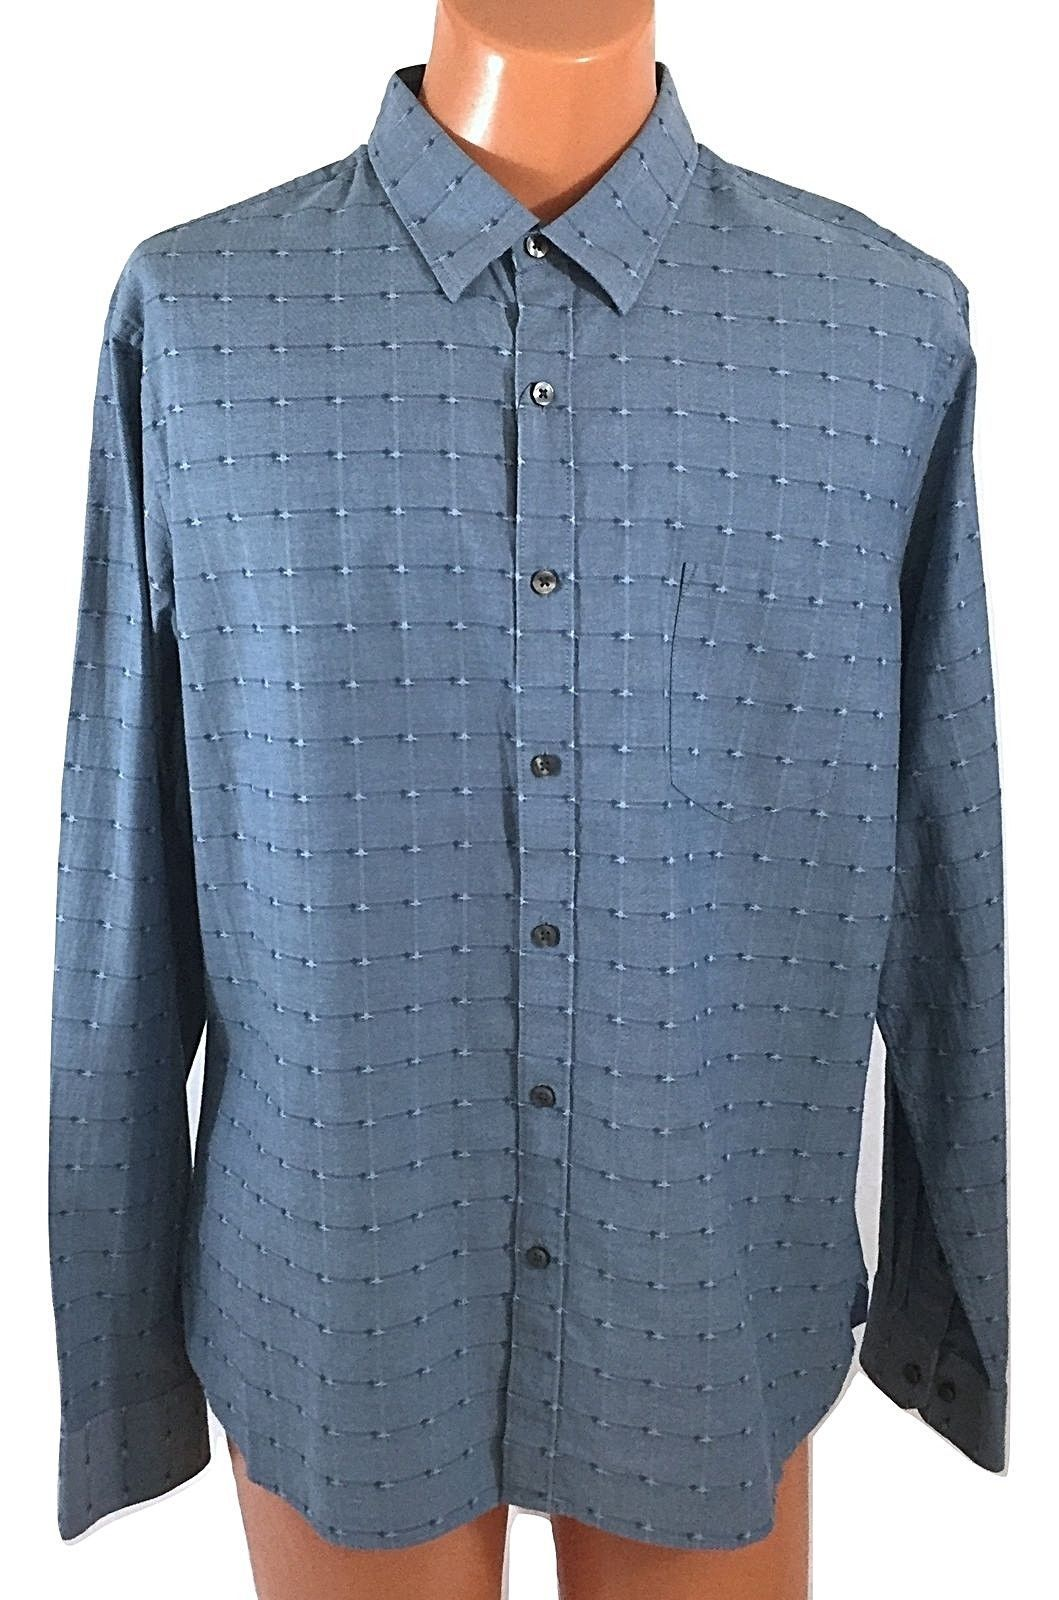 Van Heusen Traveler Shirt Slim Fit Rockwall Auction